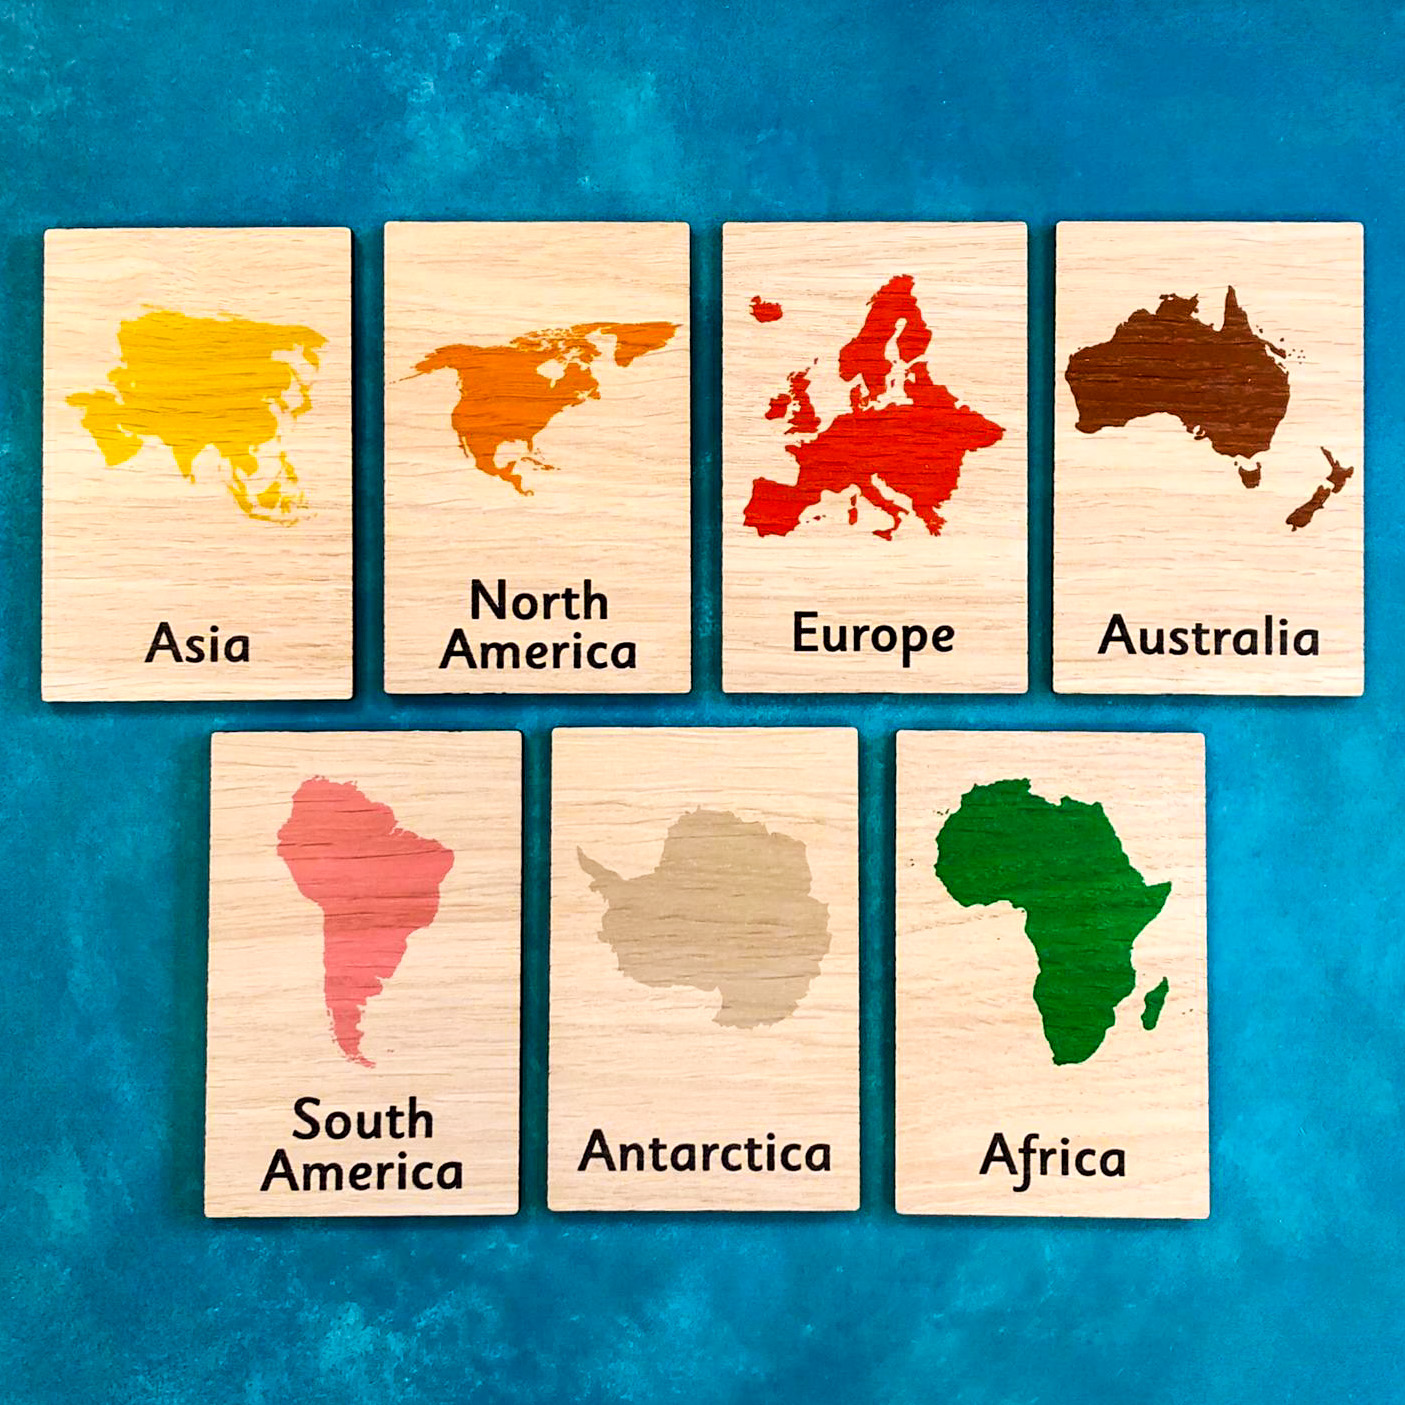 Montessori Inspired Wooden Learning Tiles - Continents of the World